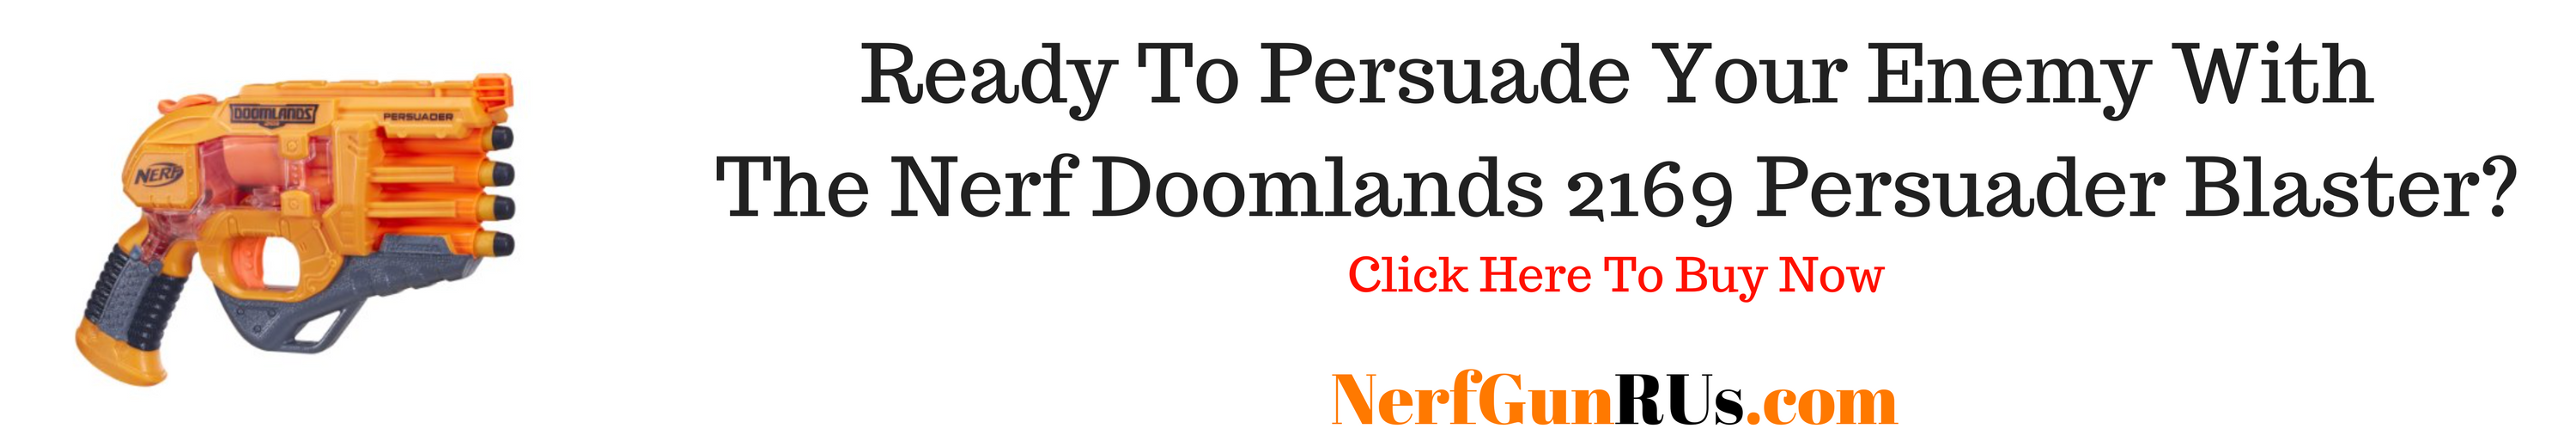 Ready To Persuade Your Enemy With The Nerf Doomlands 2169 Persuader Blaster | NerfGunRUs.com